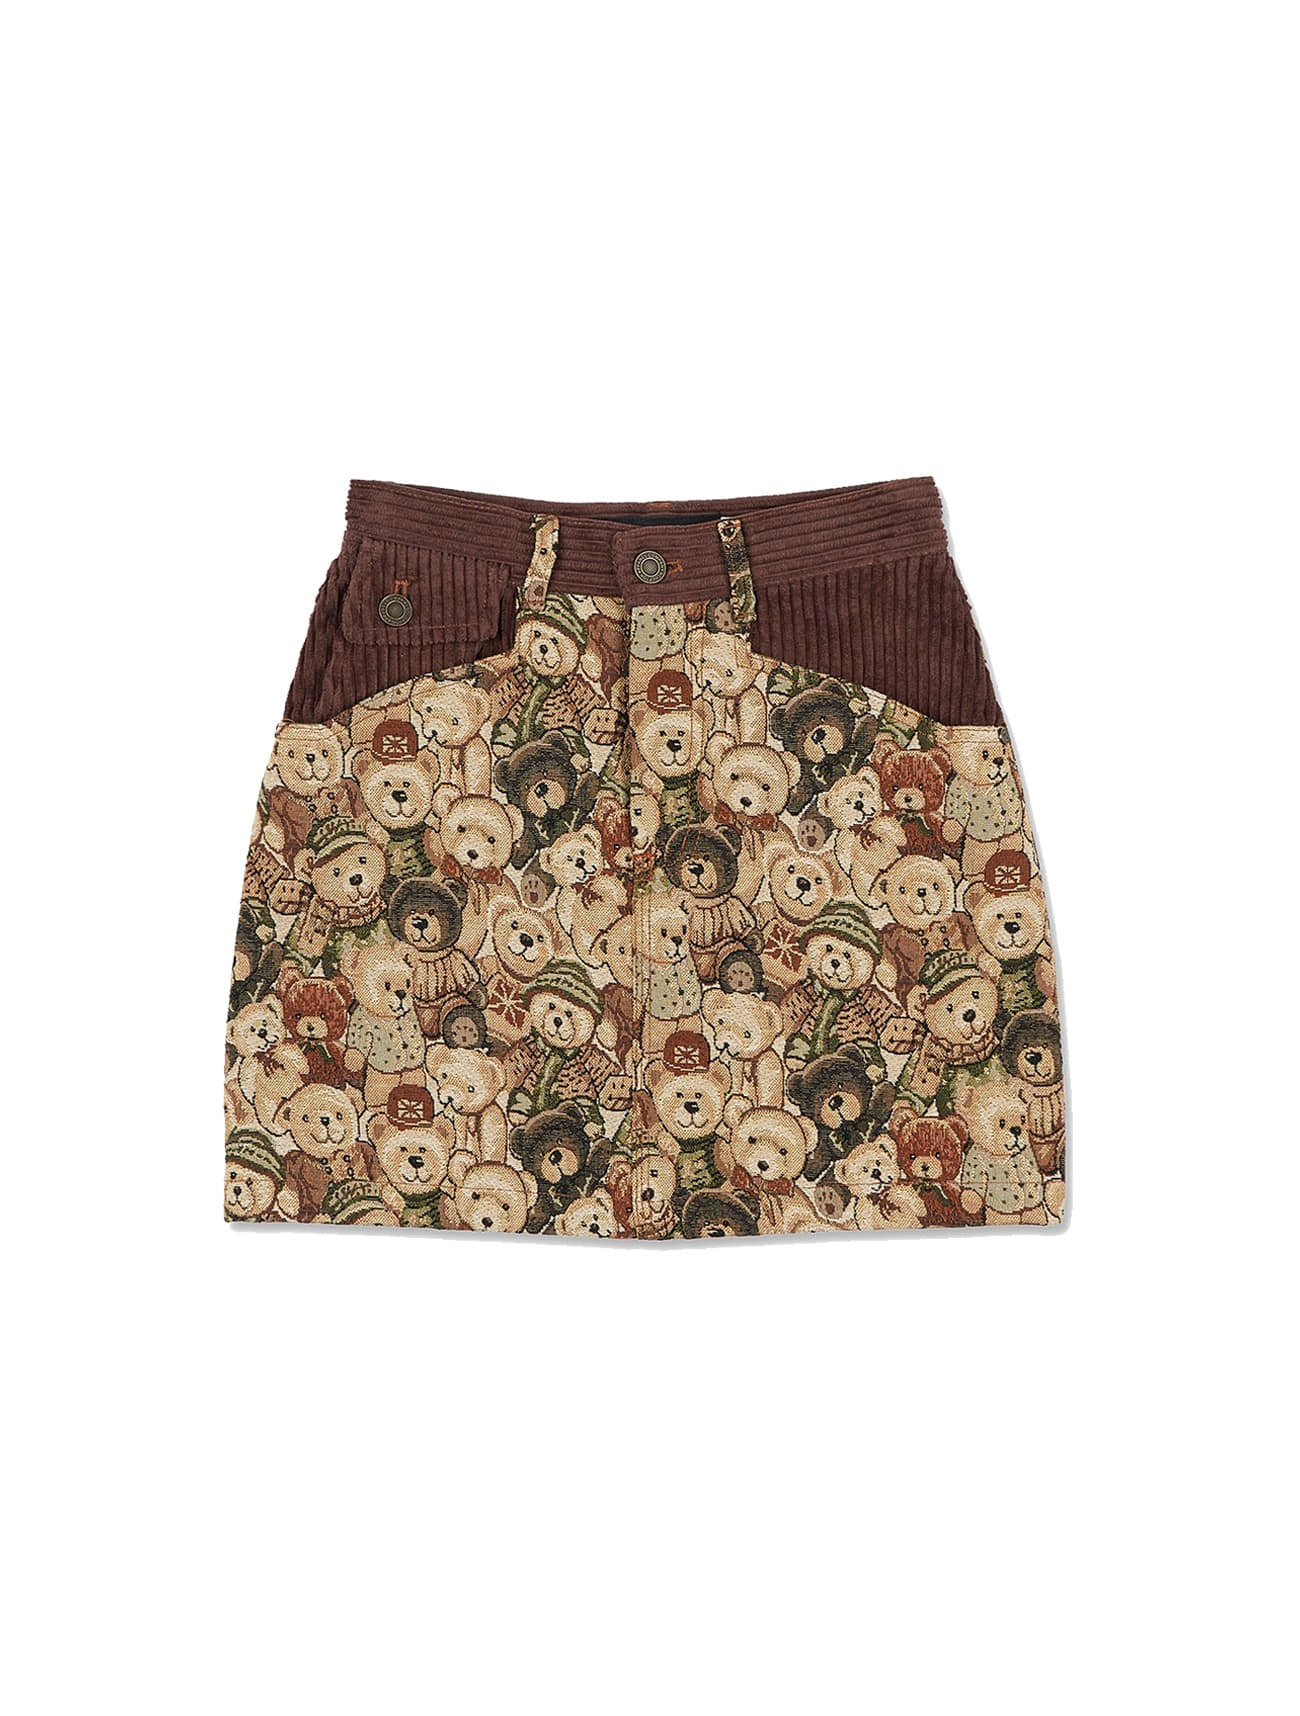 Furry Friends Carpet Skirt [TEDDY BEAR FRIEND]